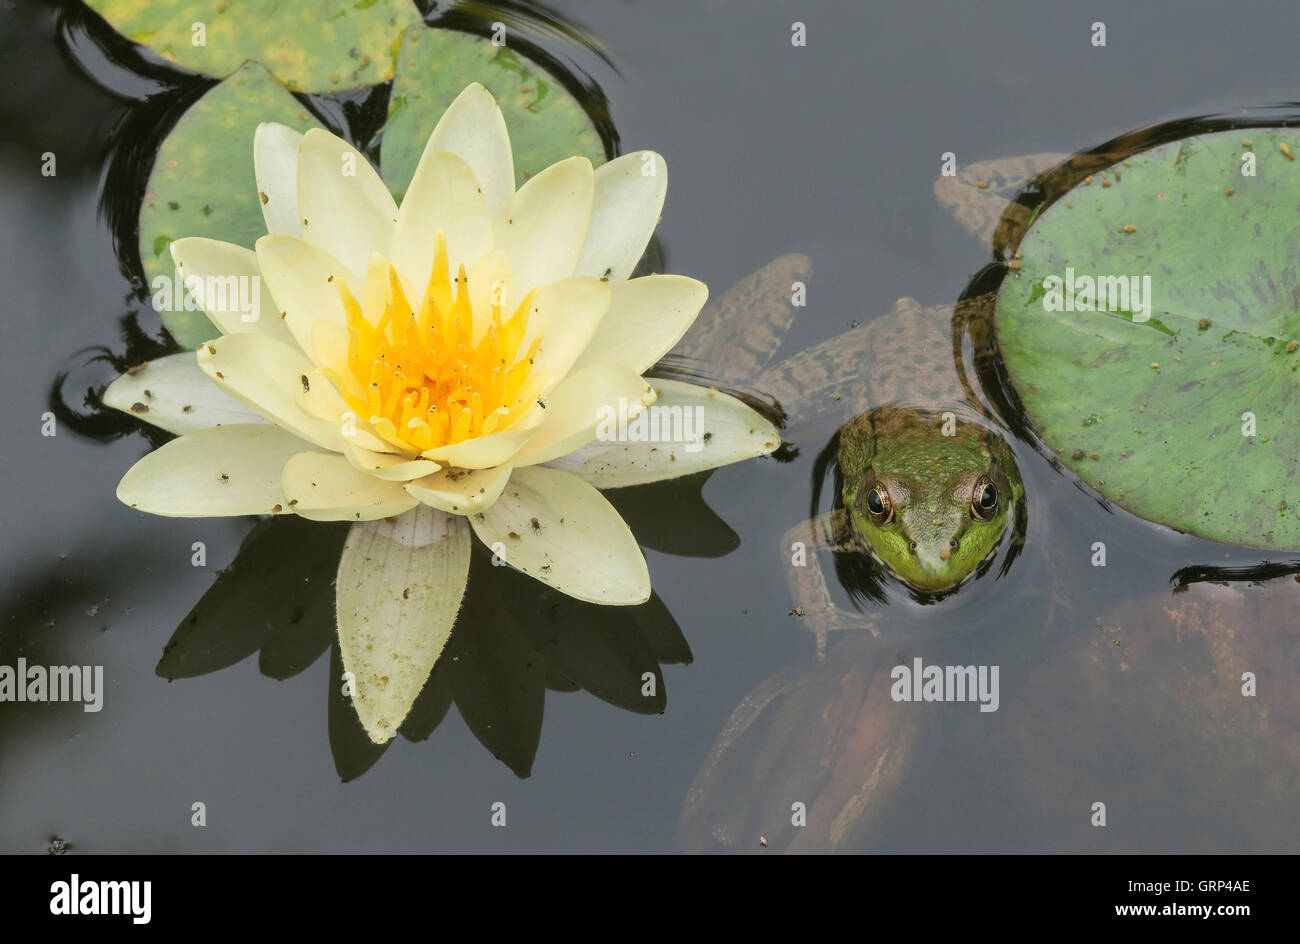 Green Frog Rana clamitans in pond with Water Lilys (Nymphaea odorata), and Springtails (Collembola) Eastern USA - Stock Image